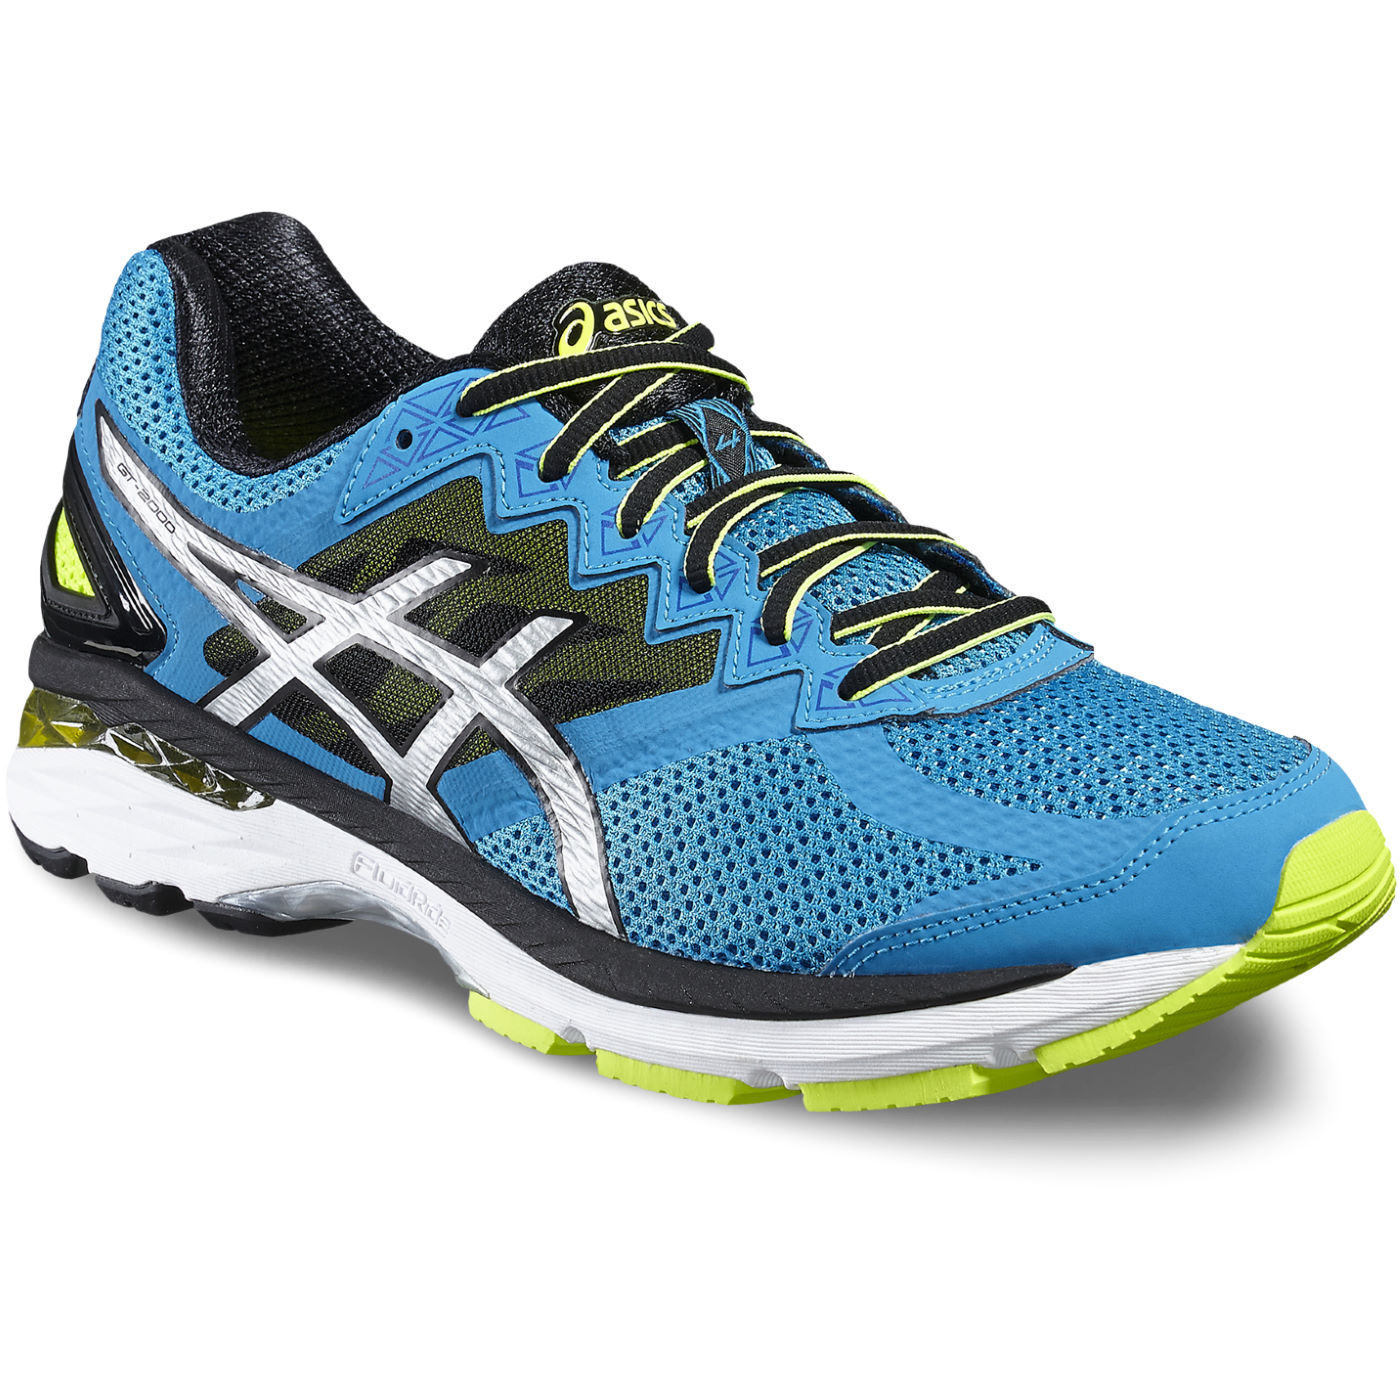 wiggle asics gt 2000 4 2e shoes aw16 stability running shoes. Black Bedroom Furniture Sets. Home Design Ideas